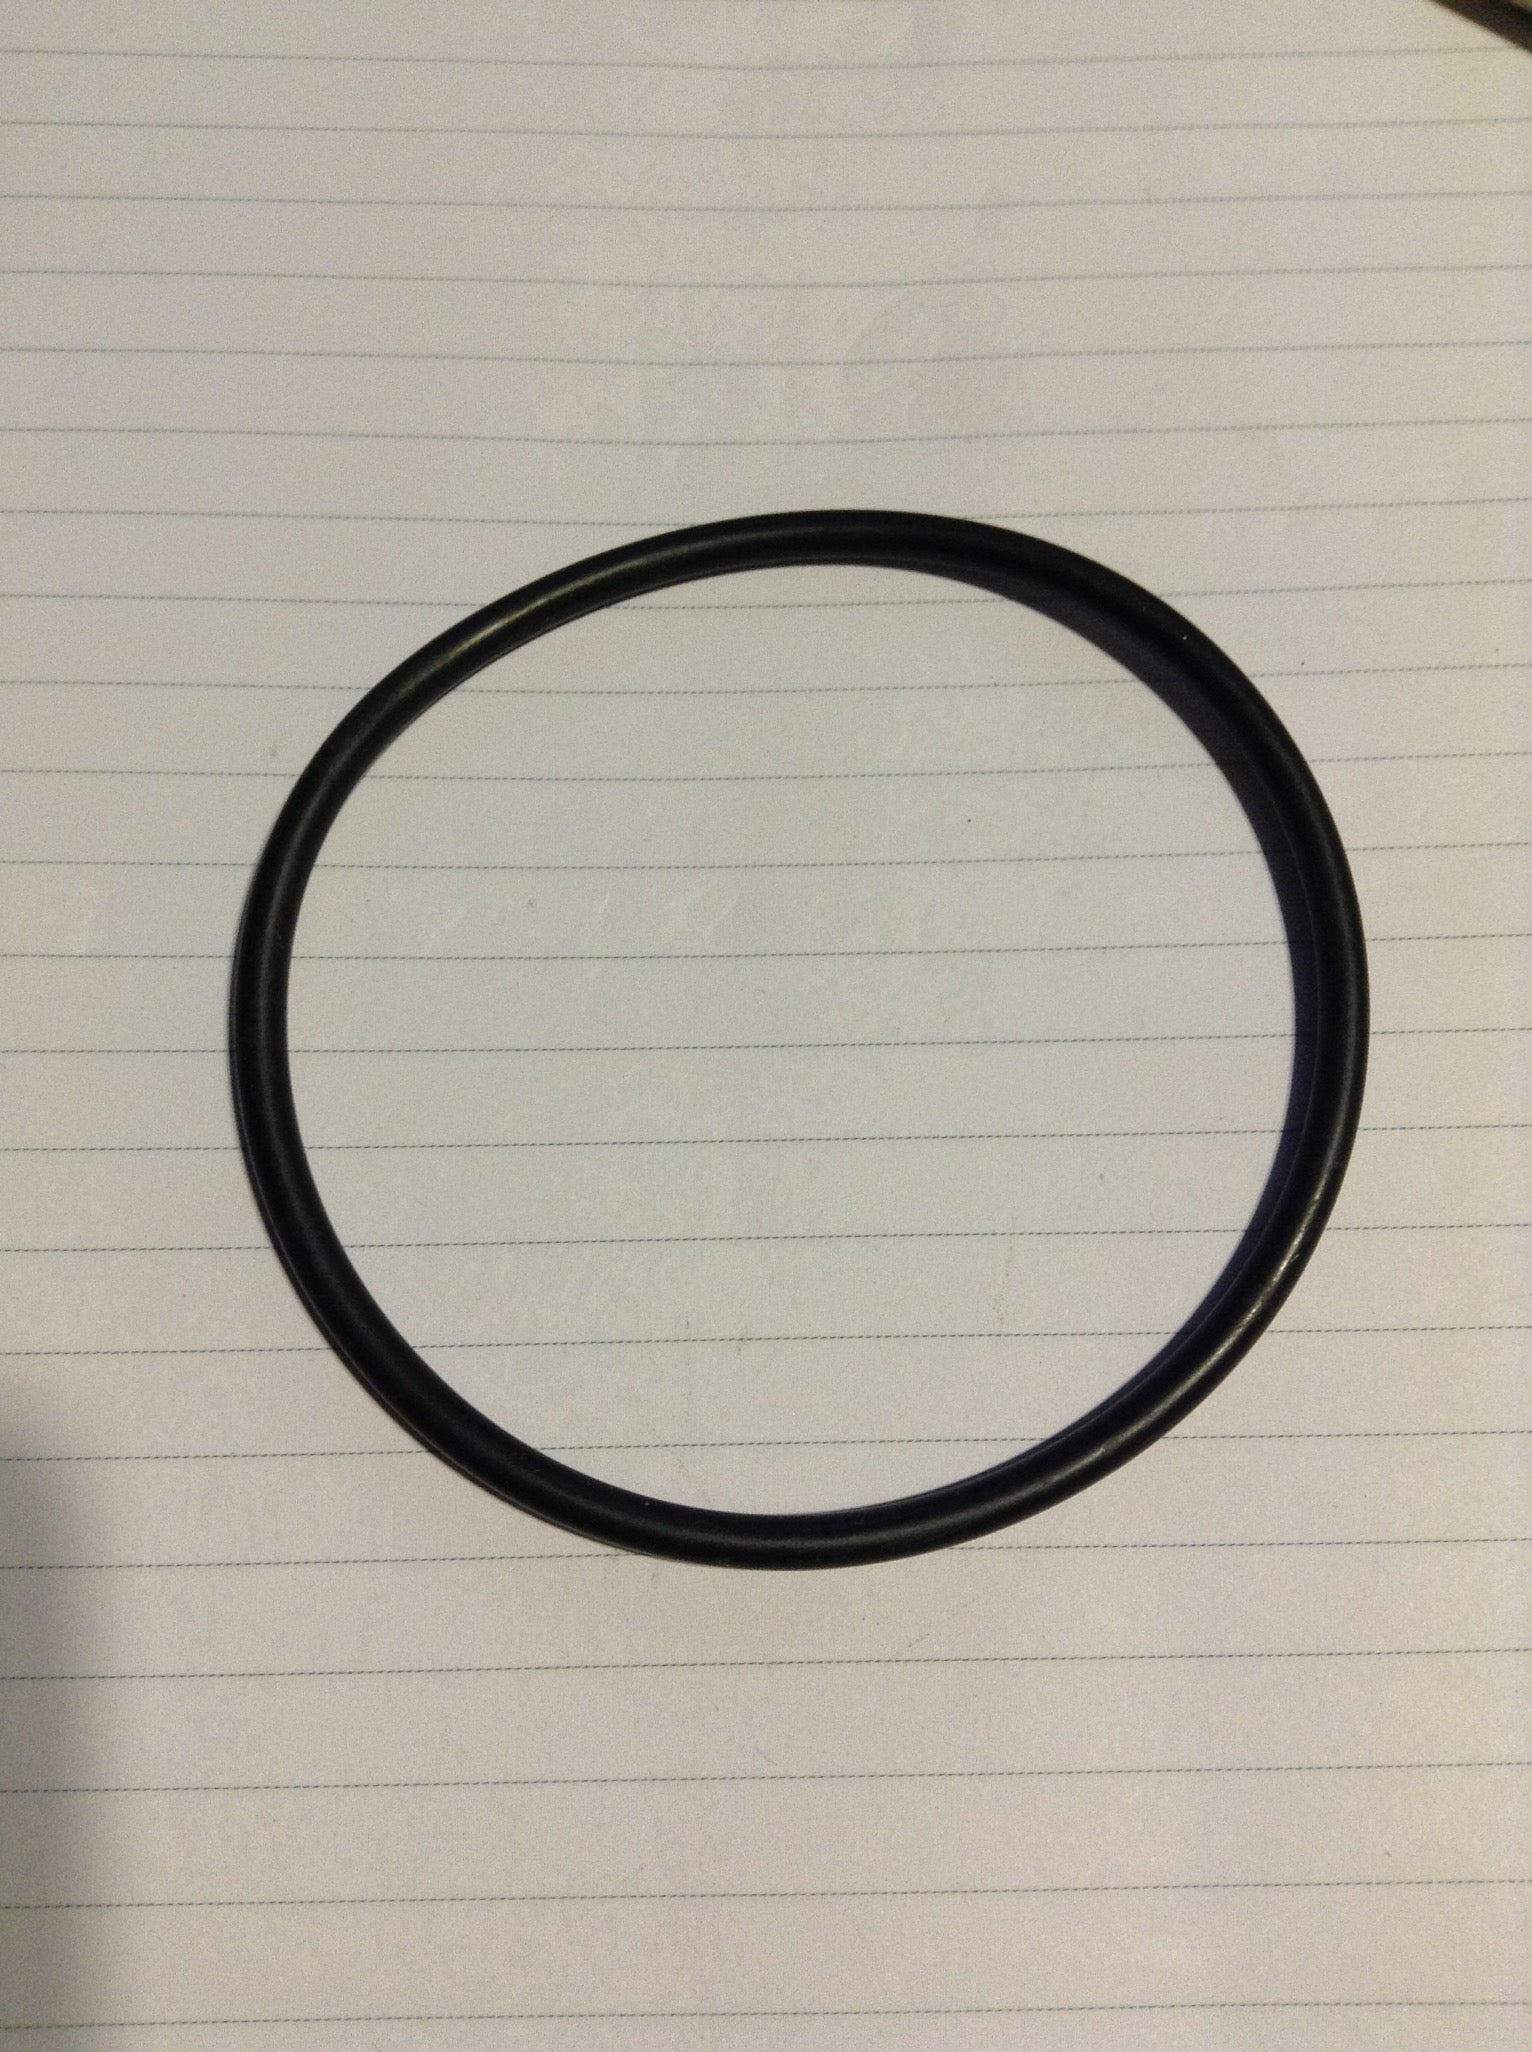 O-RING Seal D45467400 MF Combine - BRM-SHOP.COM